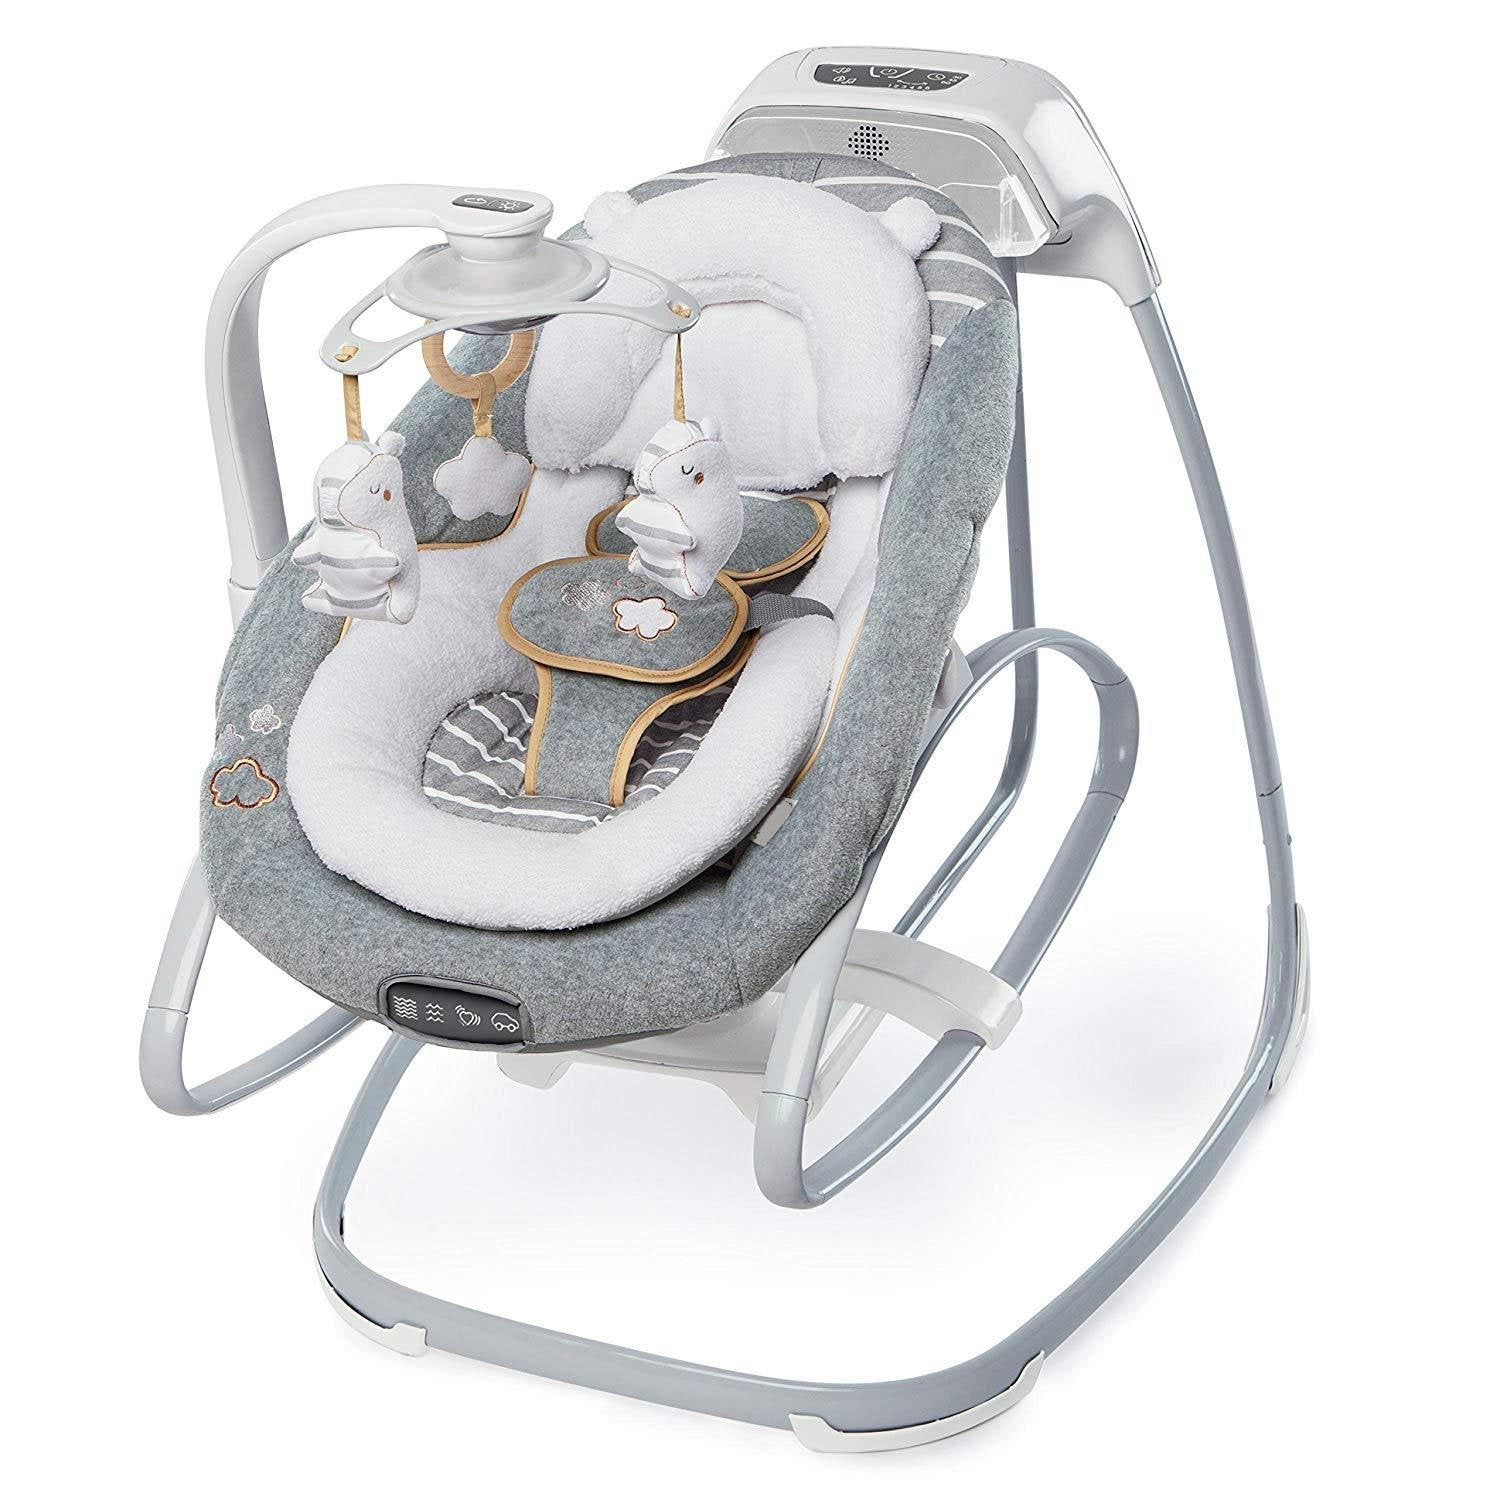 Smart Compact Cradle With Full Body Bolster